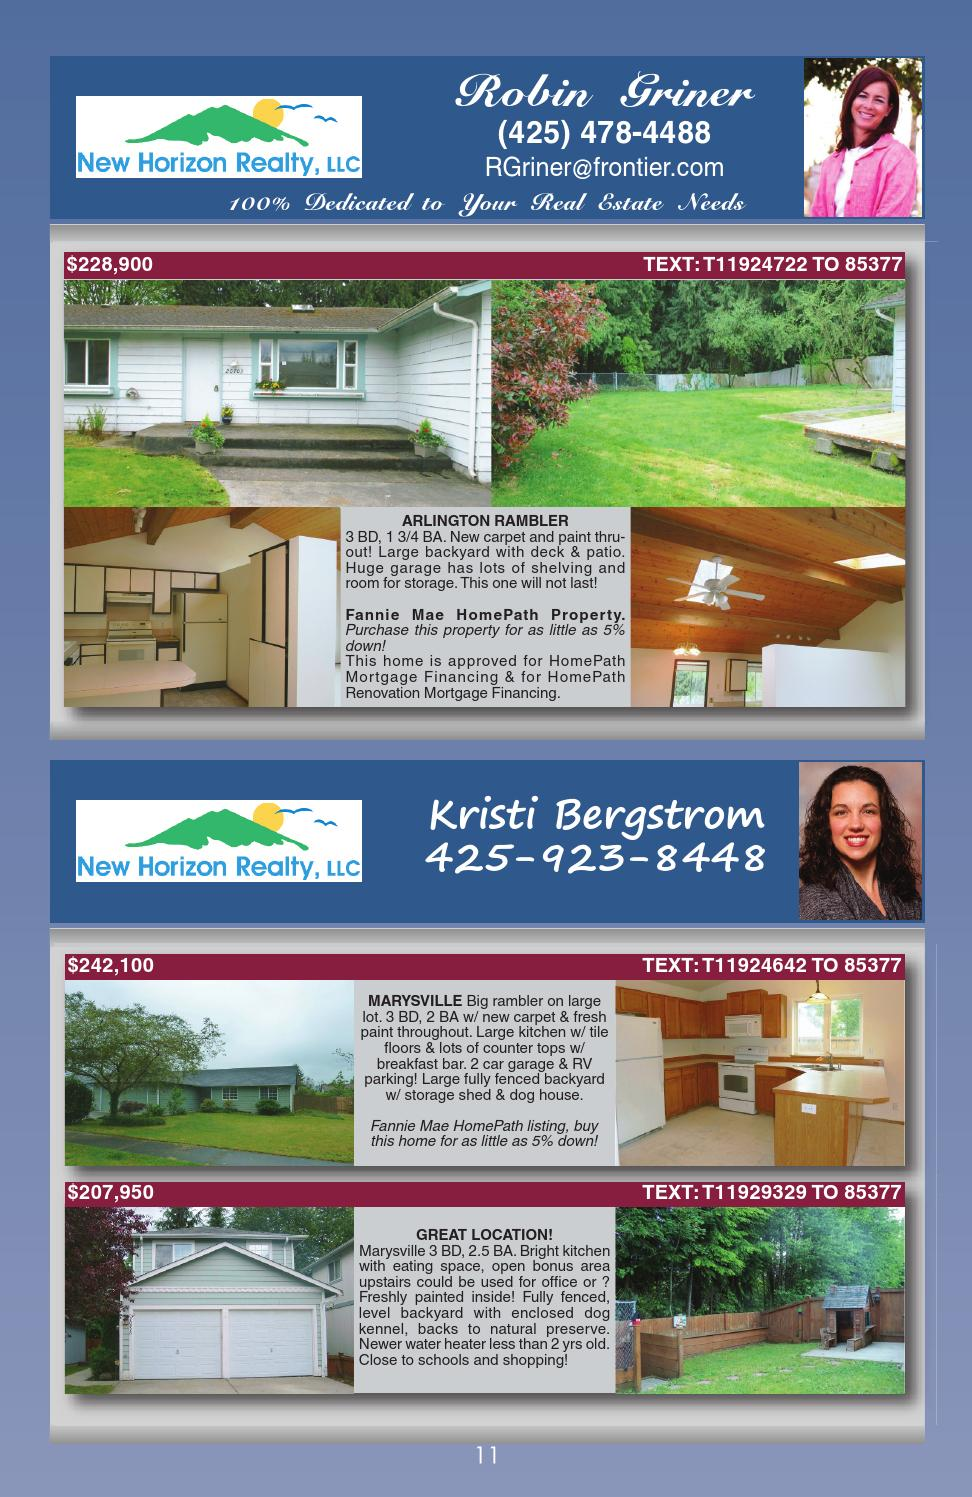 new horizon realty llc volume 1 issue 3 by the real estate book